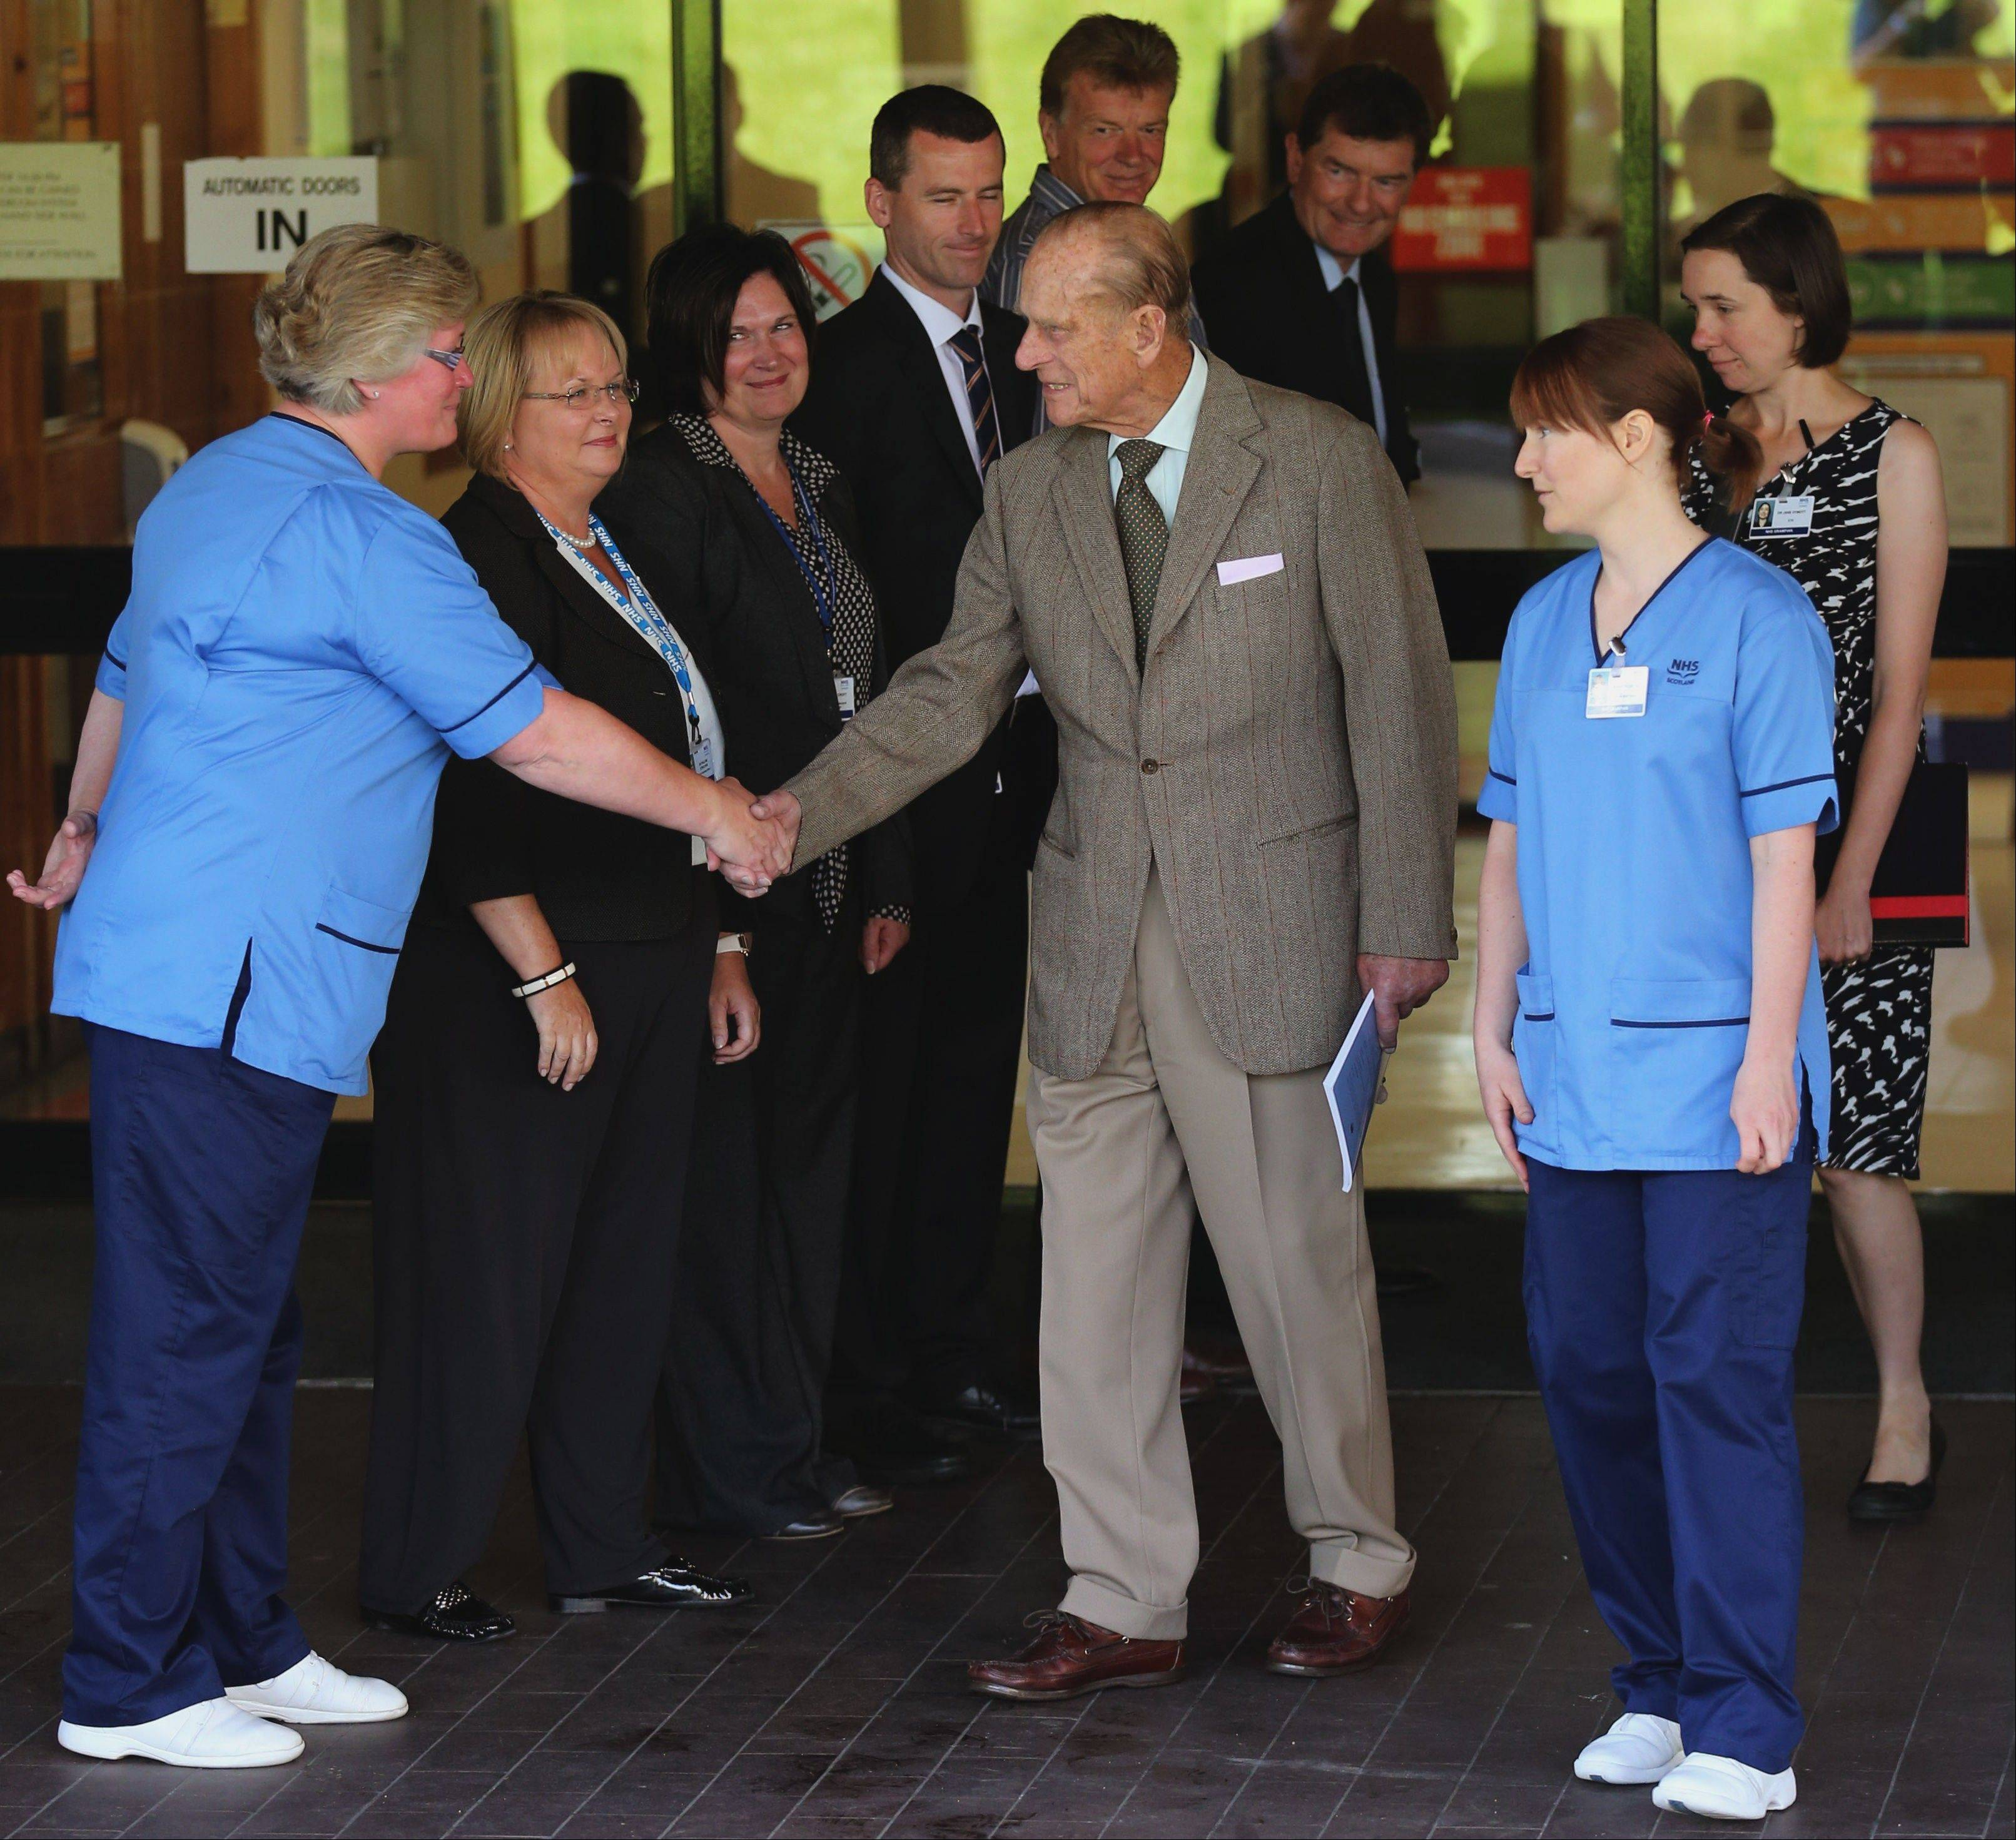 Britain's Prince Philip thanks hospital staff as he leaves Aberdeen Royal Infirmary in Aberdeen, Scotland, on Monday after five days of treatment for a bladder infection.